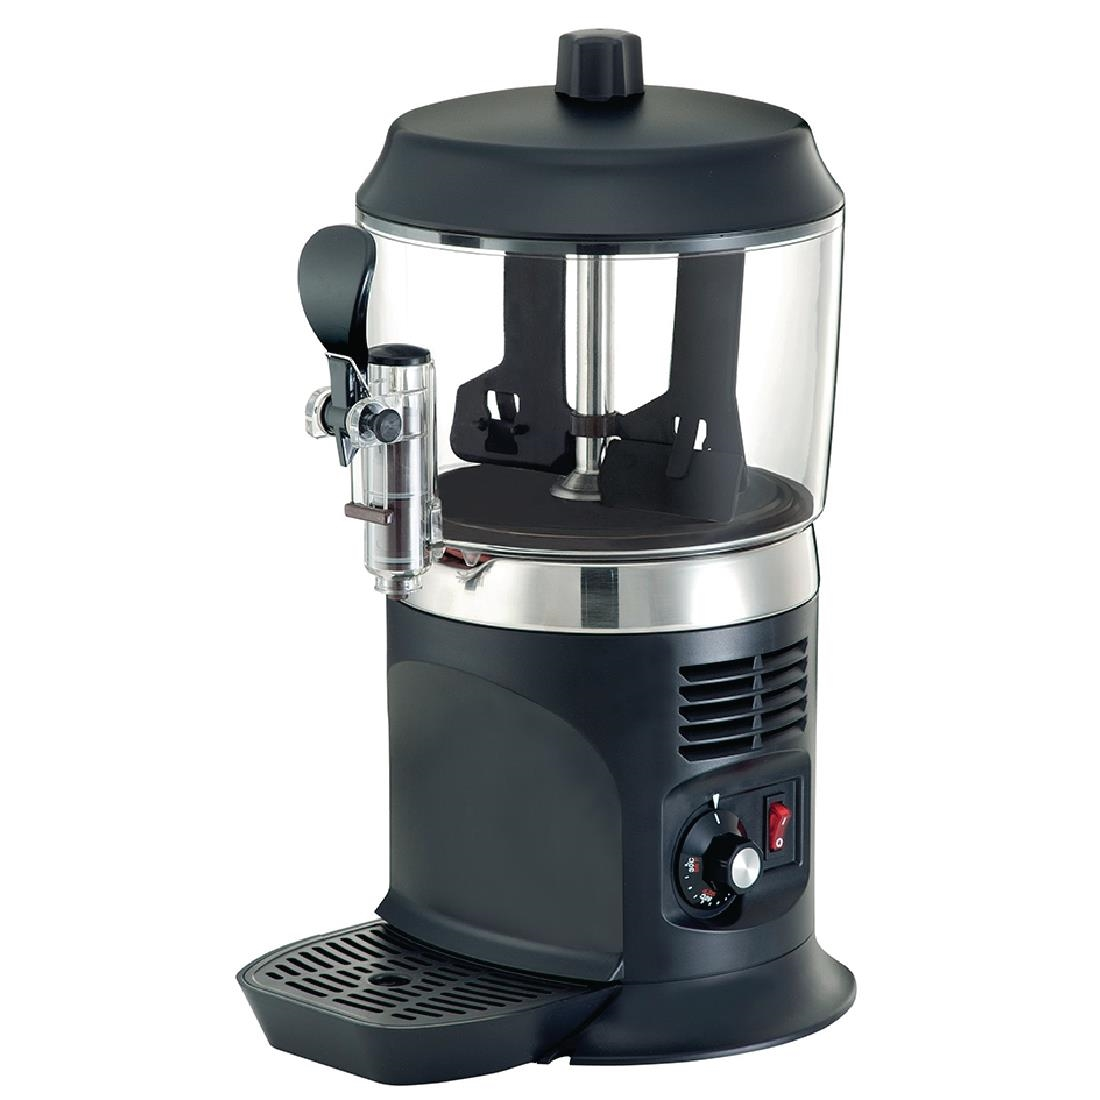 Hot Chocolate Machine For Home - Pumpkin Chocolate Chip Cookies